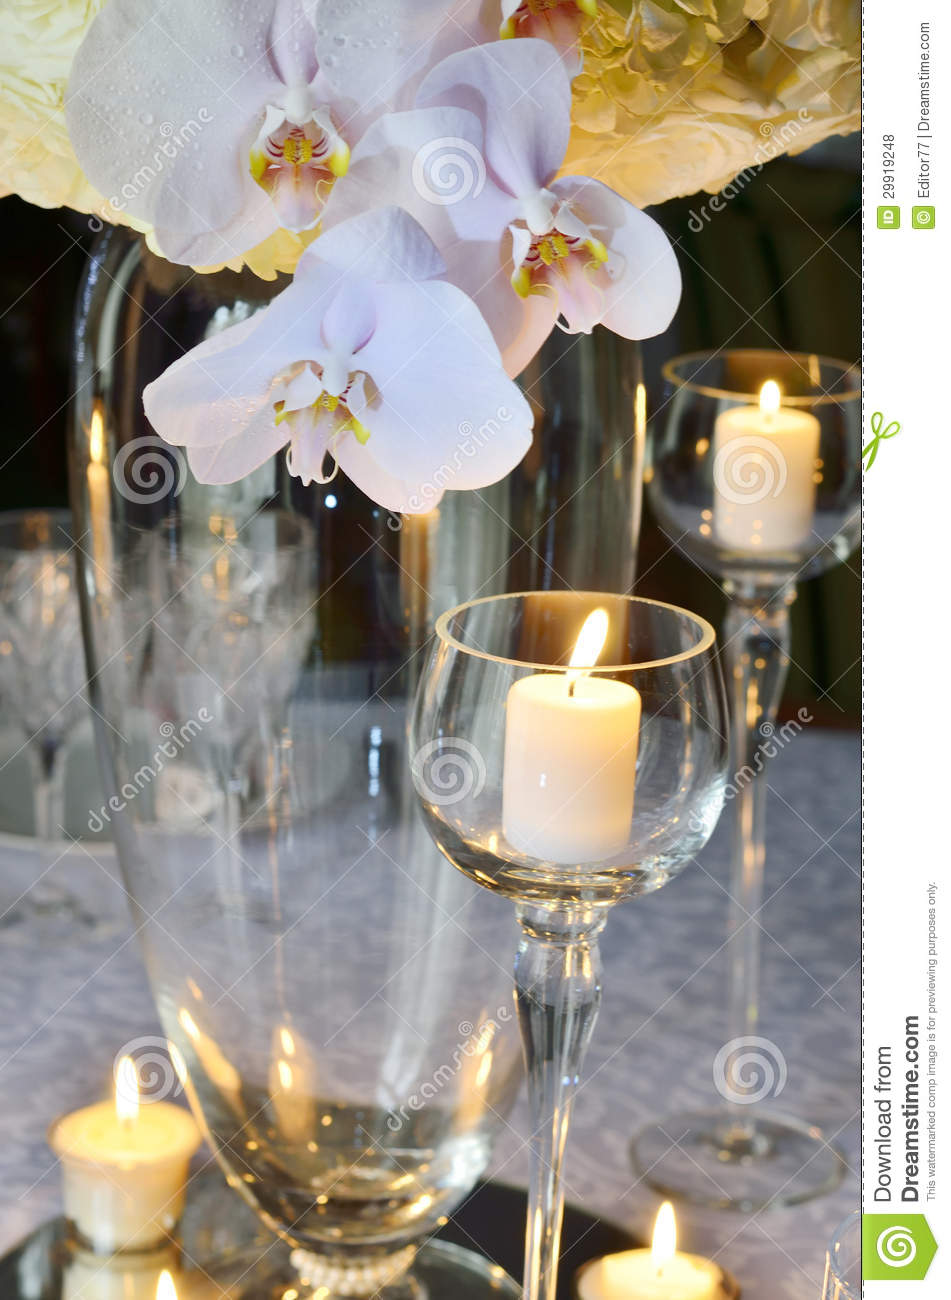 Wedding Table Decoration Stock Photo Image Of Drink